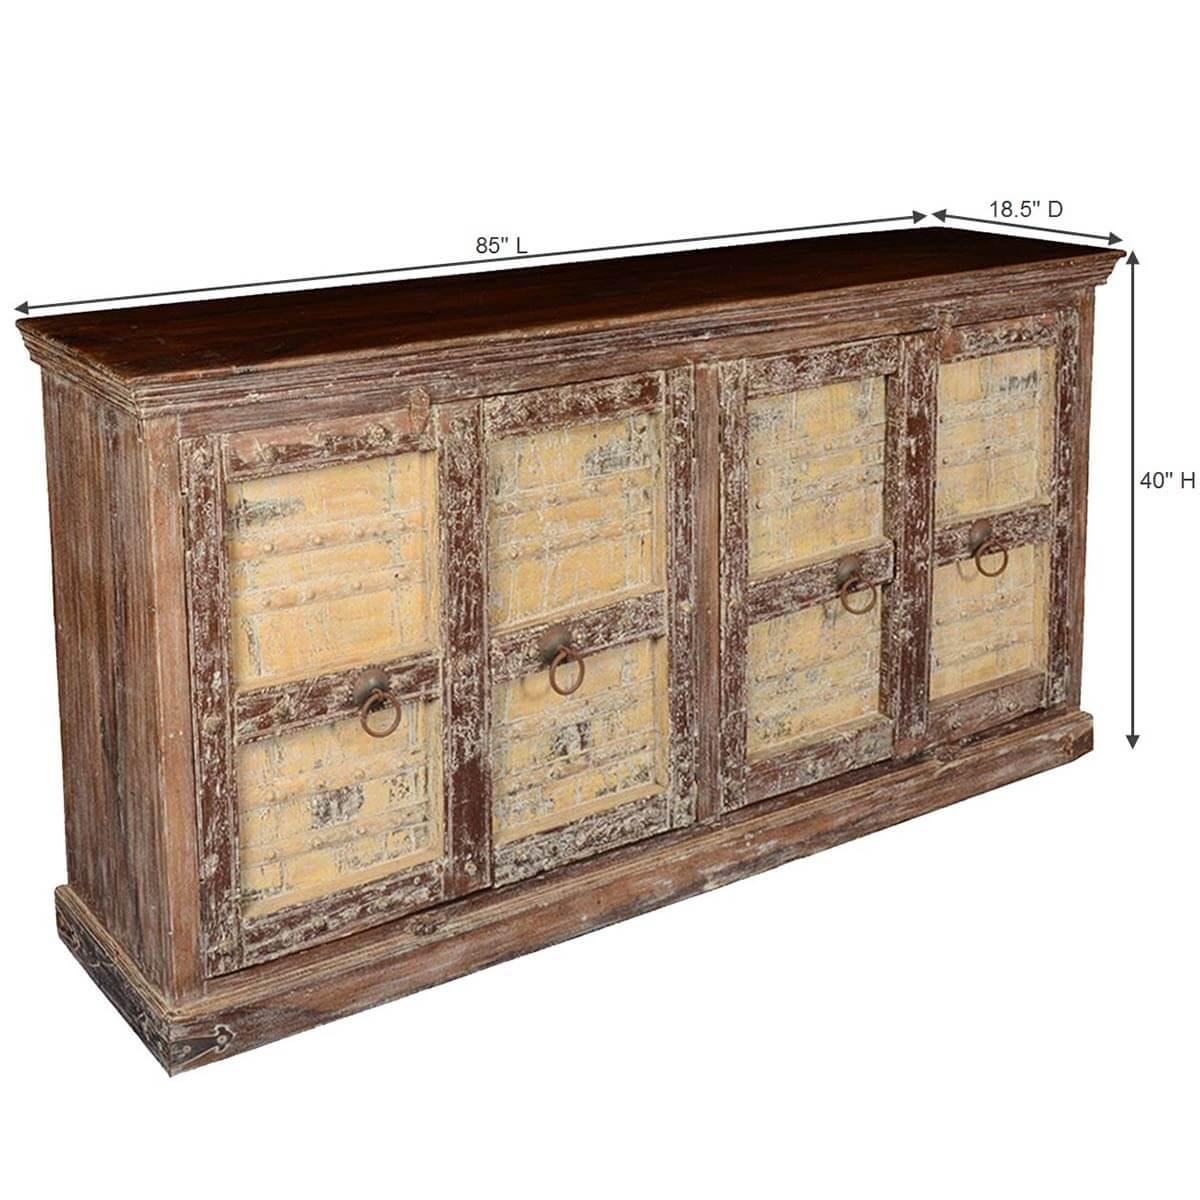 Gothic Dreams Reclaimed Wood 85quot Sideboard Cabinet : 64064 from www.sierralivingconcepts.com size 1200 x 1200 jpeg 97kB